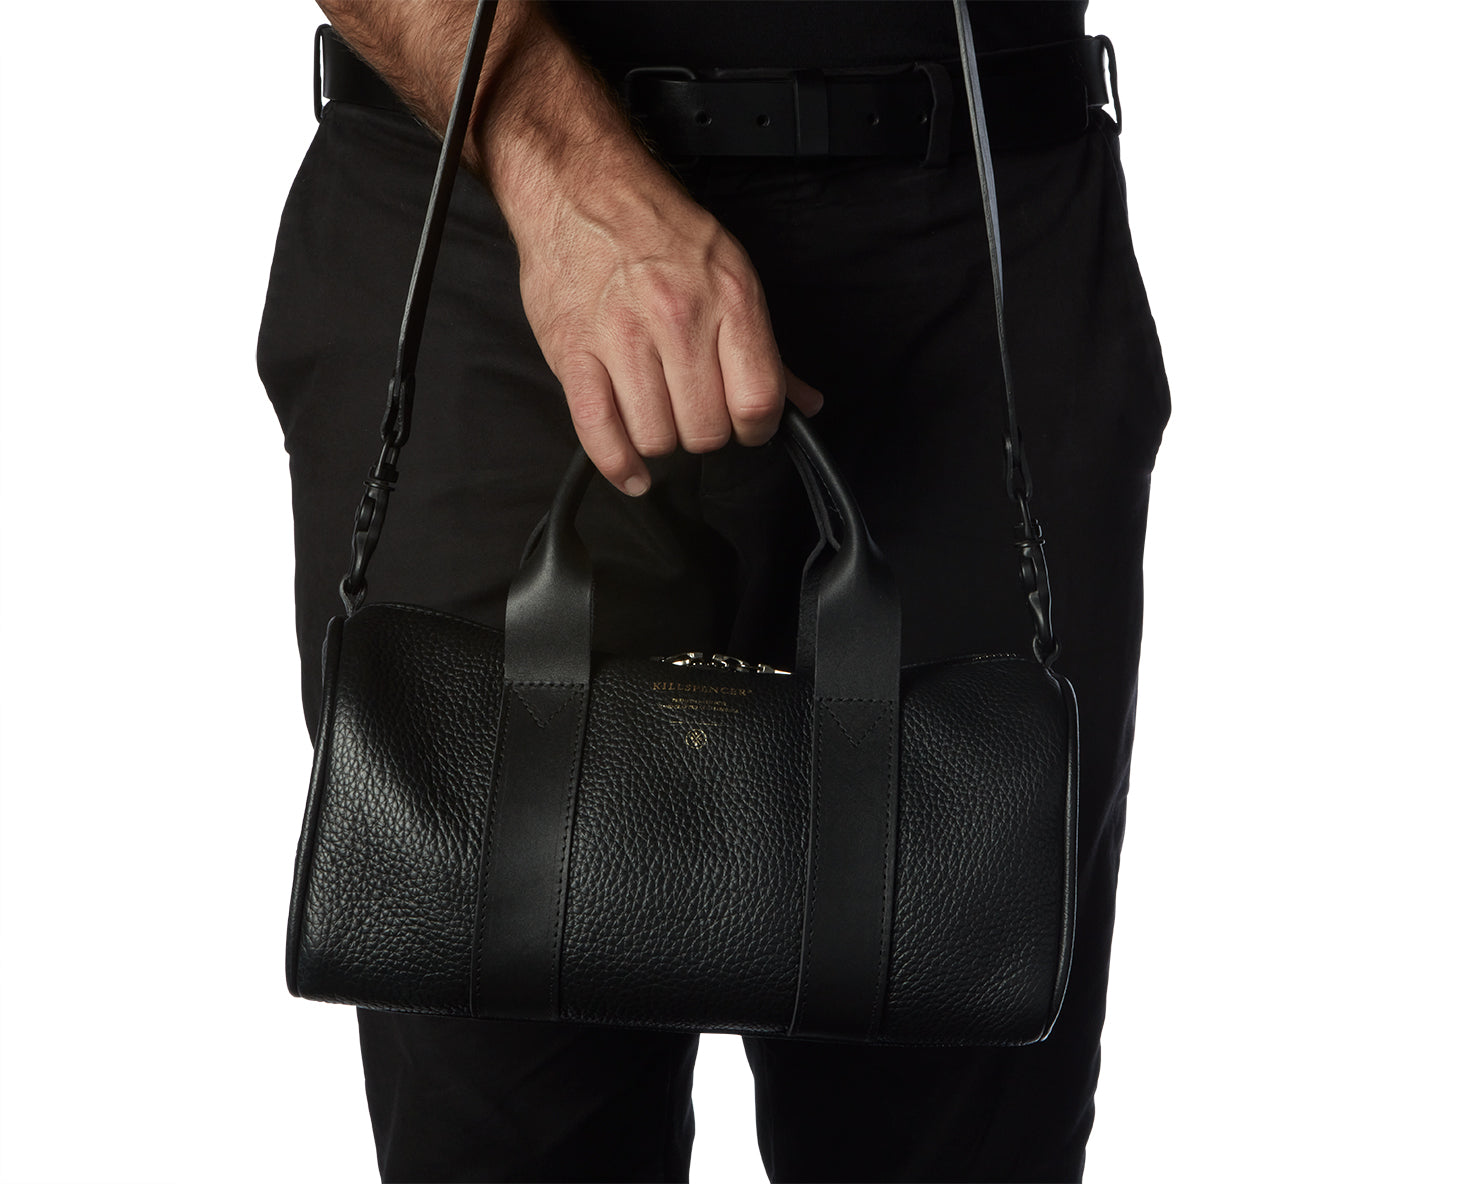 MINI DUFFLE | KILLSPENCER® - Black Leather